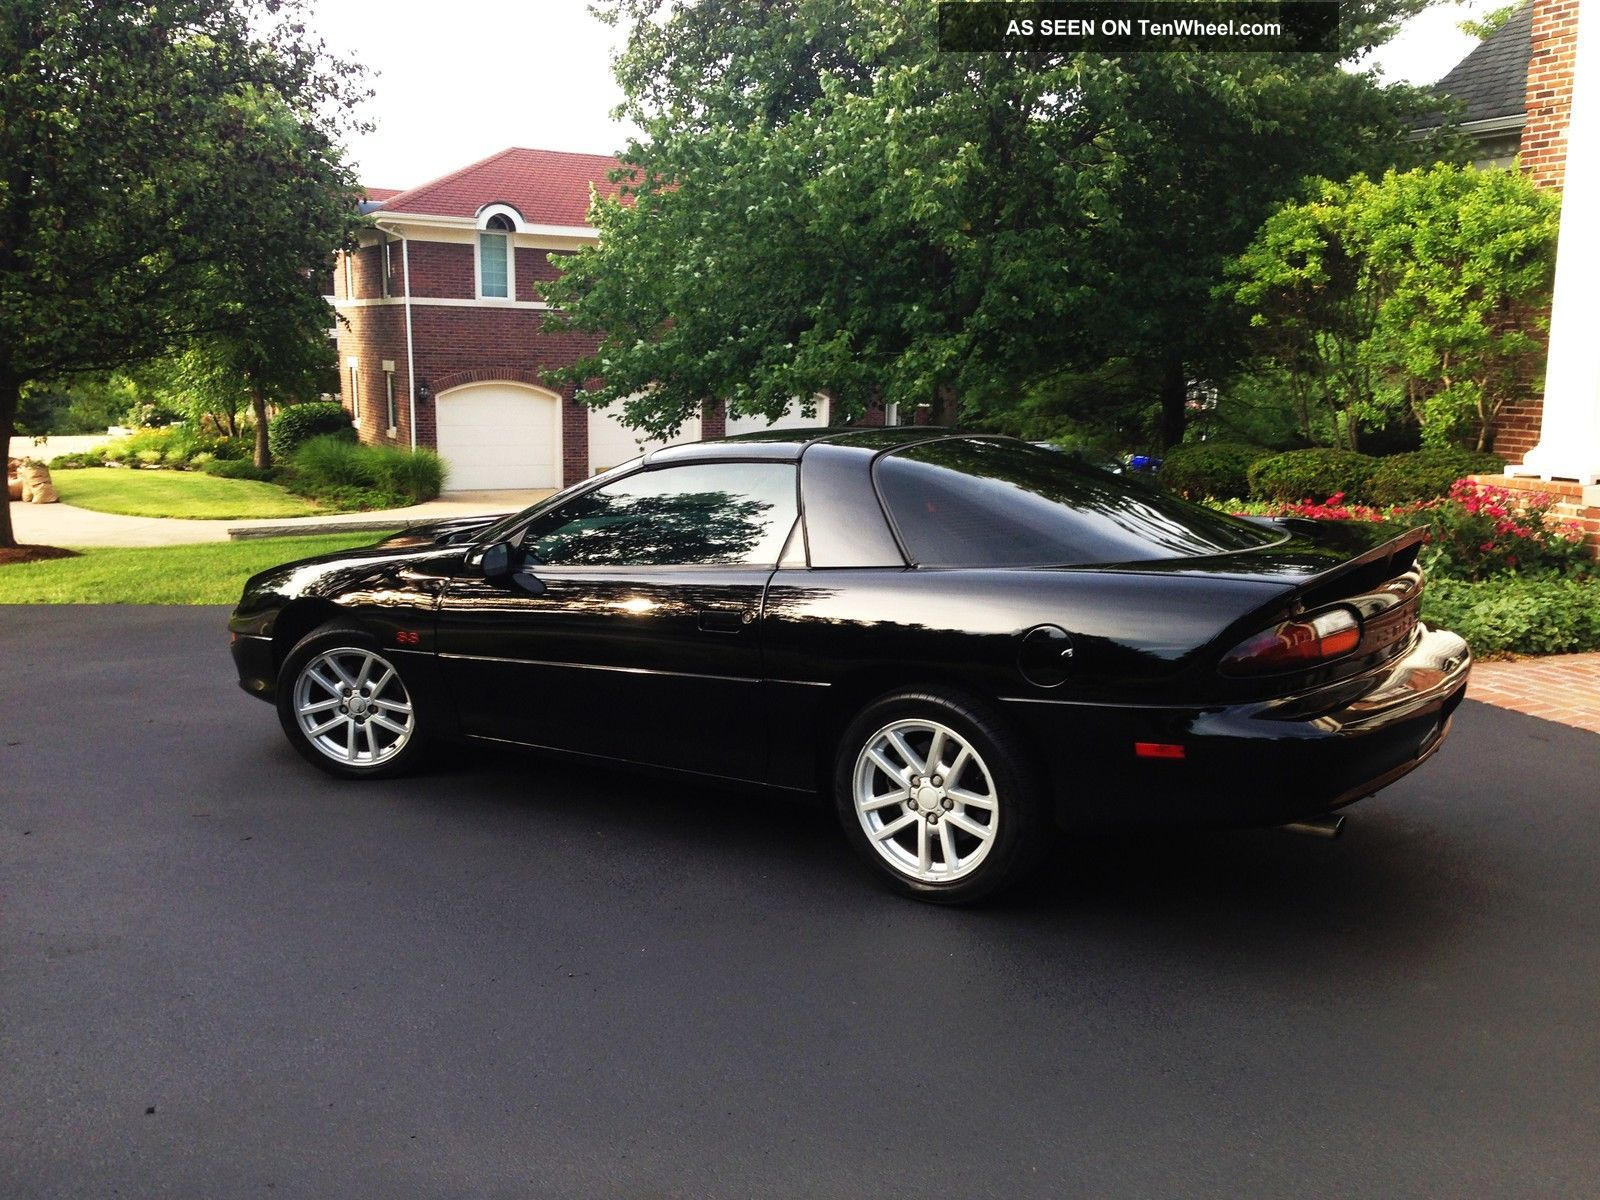 Pic X furthermore Acura Cl Type S Japanese Car Wallpapers as well Img besides Porsche Carrera Lgw additionally Chevrolet Camaro Z Ss Coupe Door L Lgw. on 2001 acura 3 2 cl type s coupe